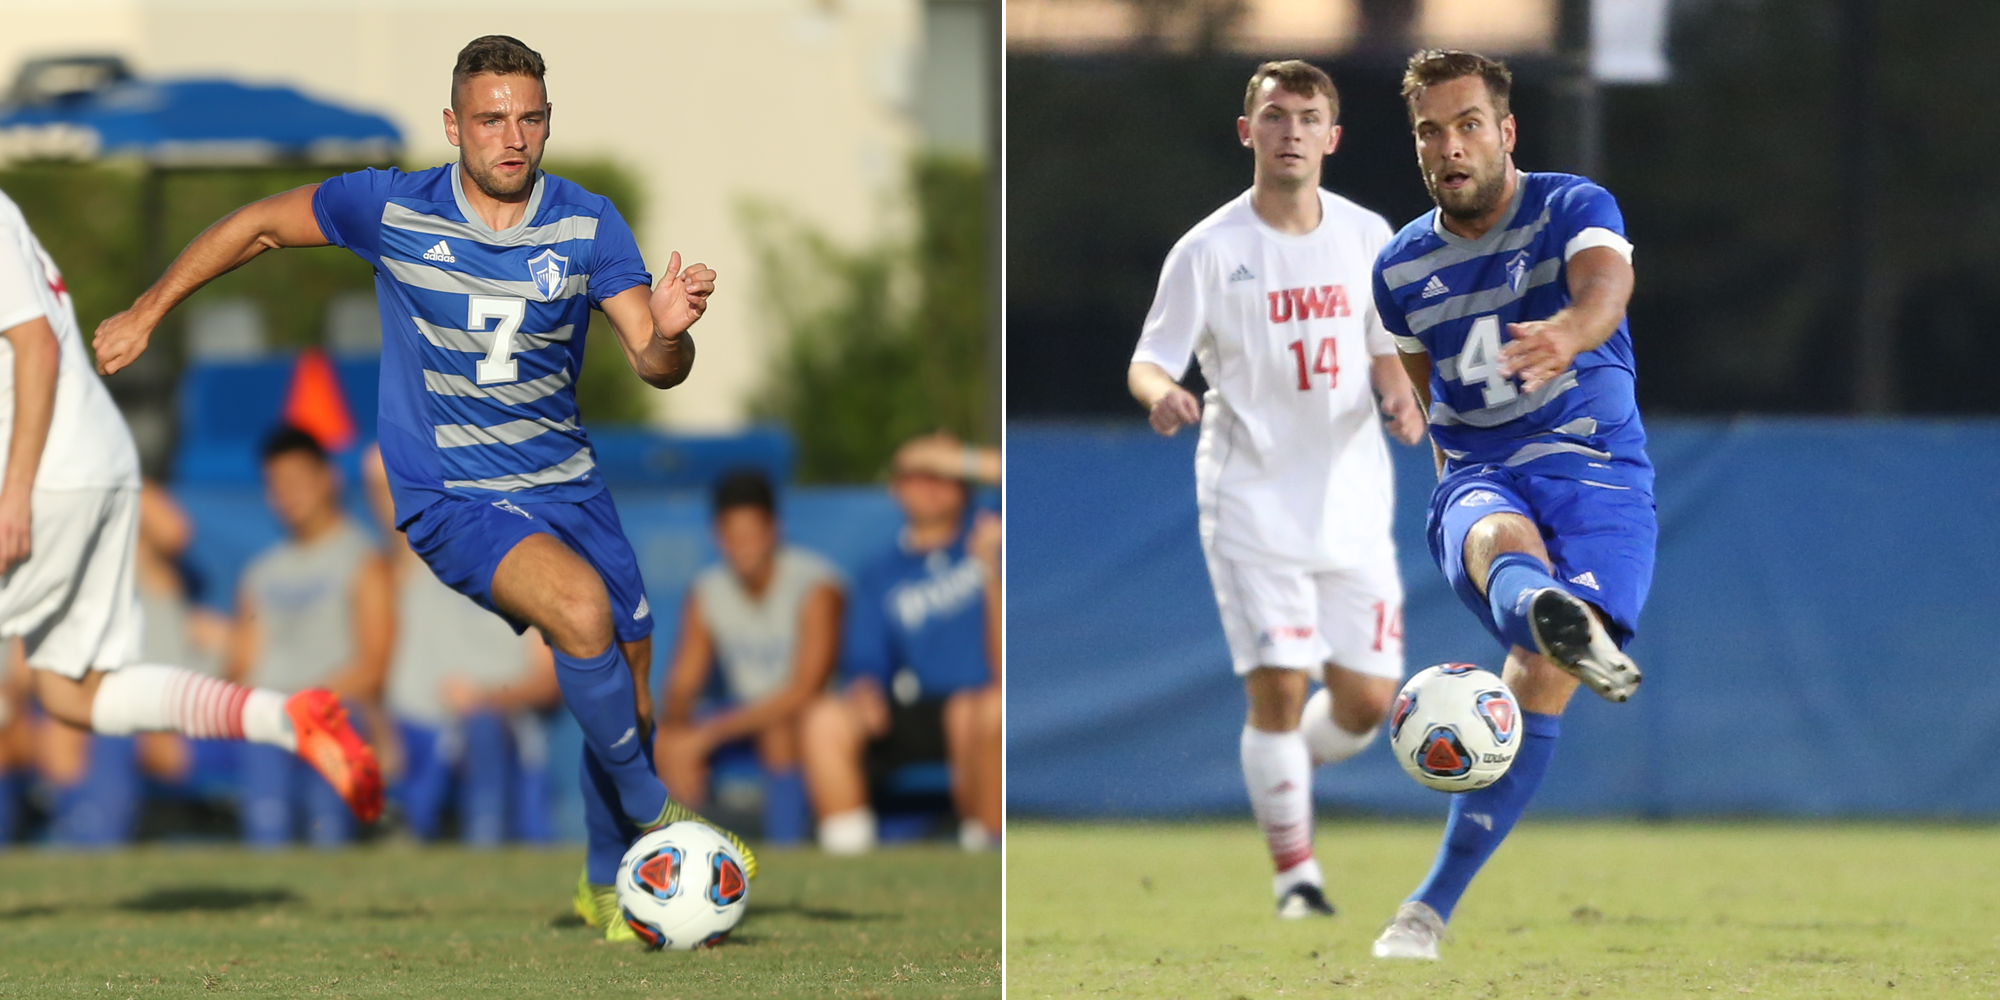 Tasky and Webb Collect United Soccer Coaches All-Region Honors